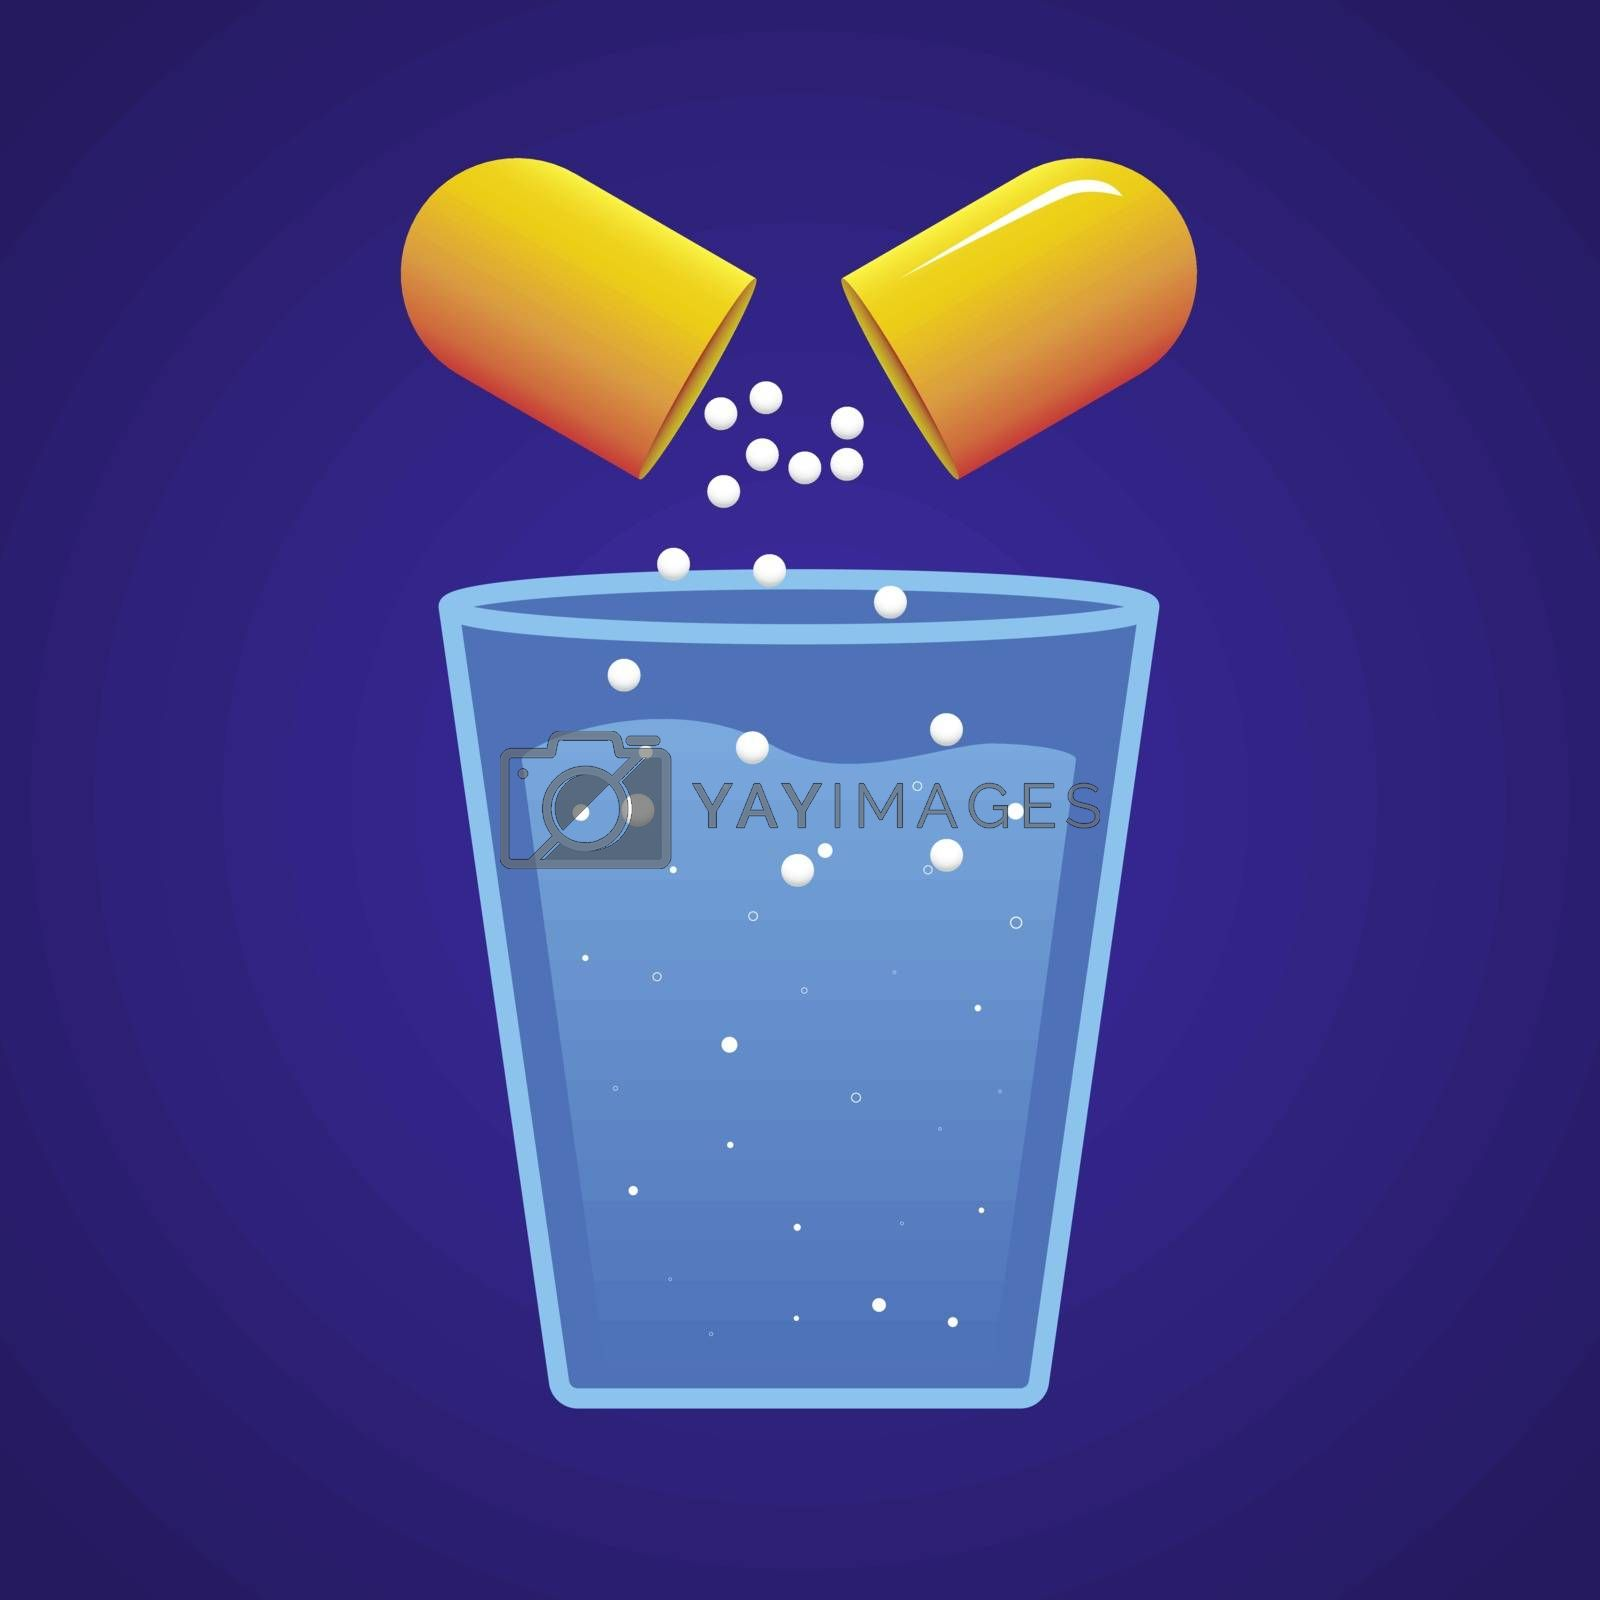 The drug content of the orange pill dissolving in a glass of water. Vector illustration